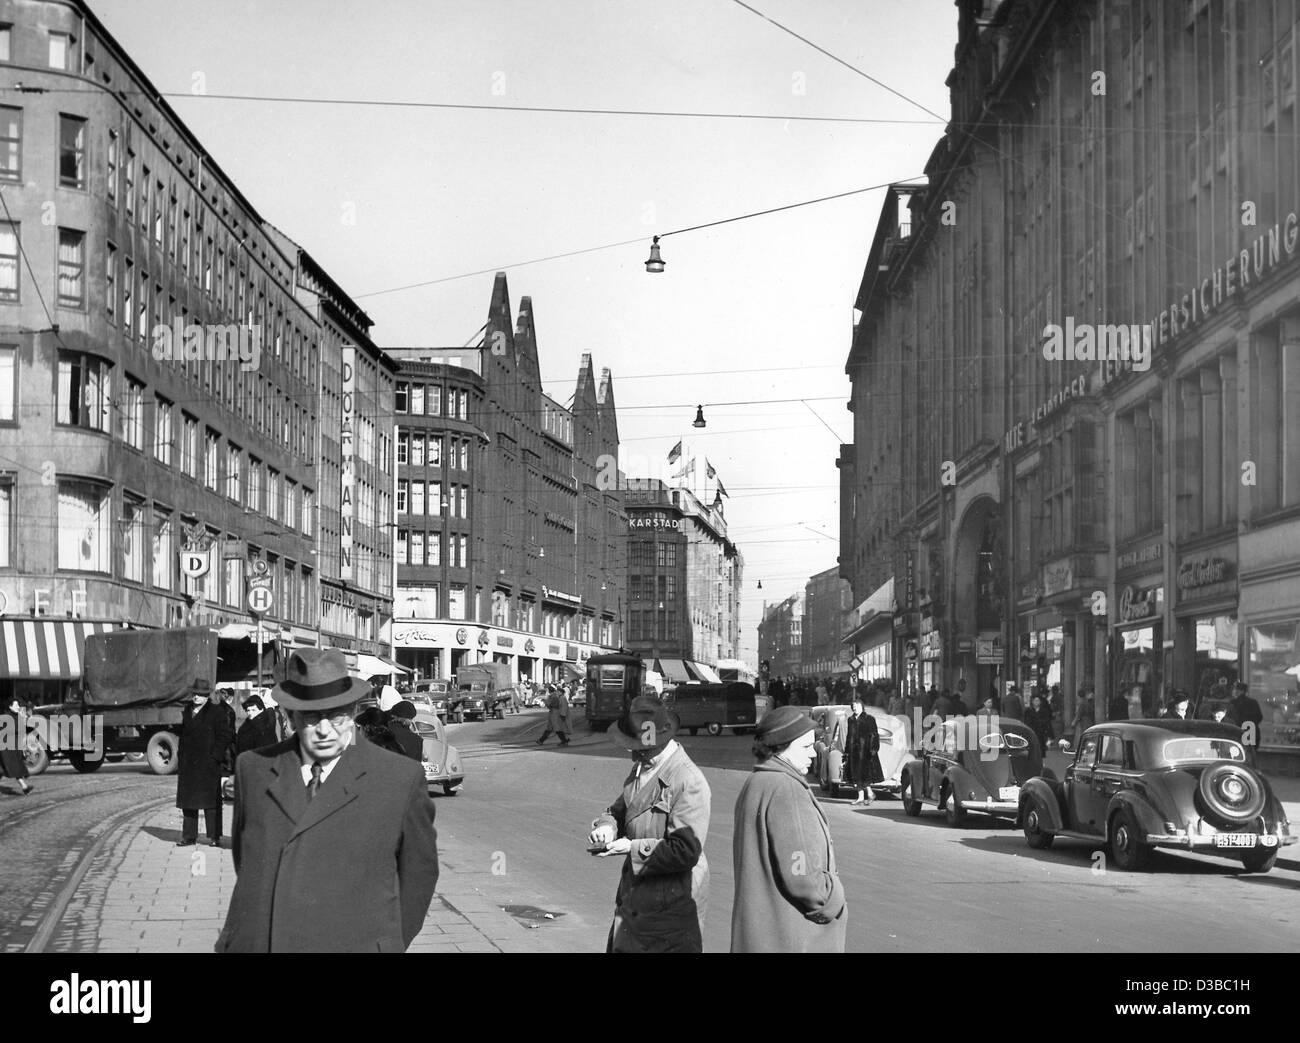 (dpa files) - Passers-by and cars on the Moenckeberg Strasse, Hamburg's largest shopping street, pictured in - Stock Image